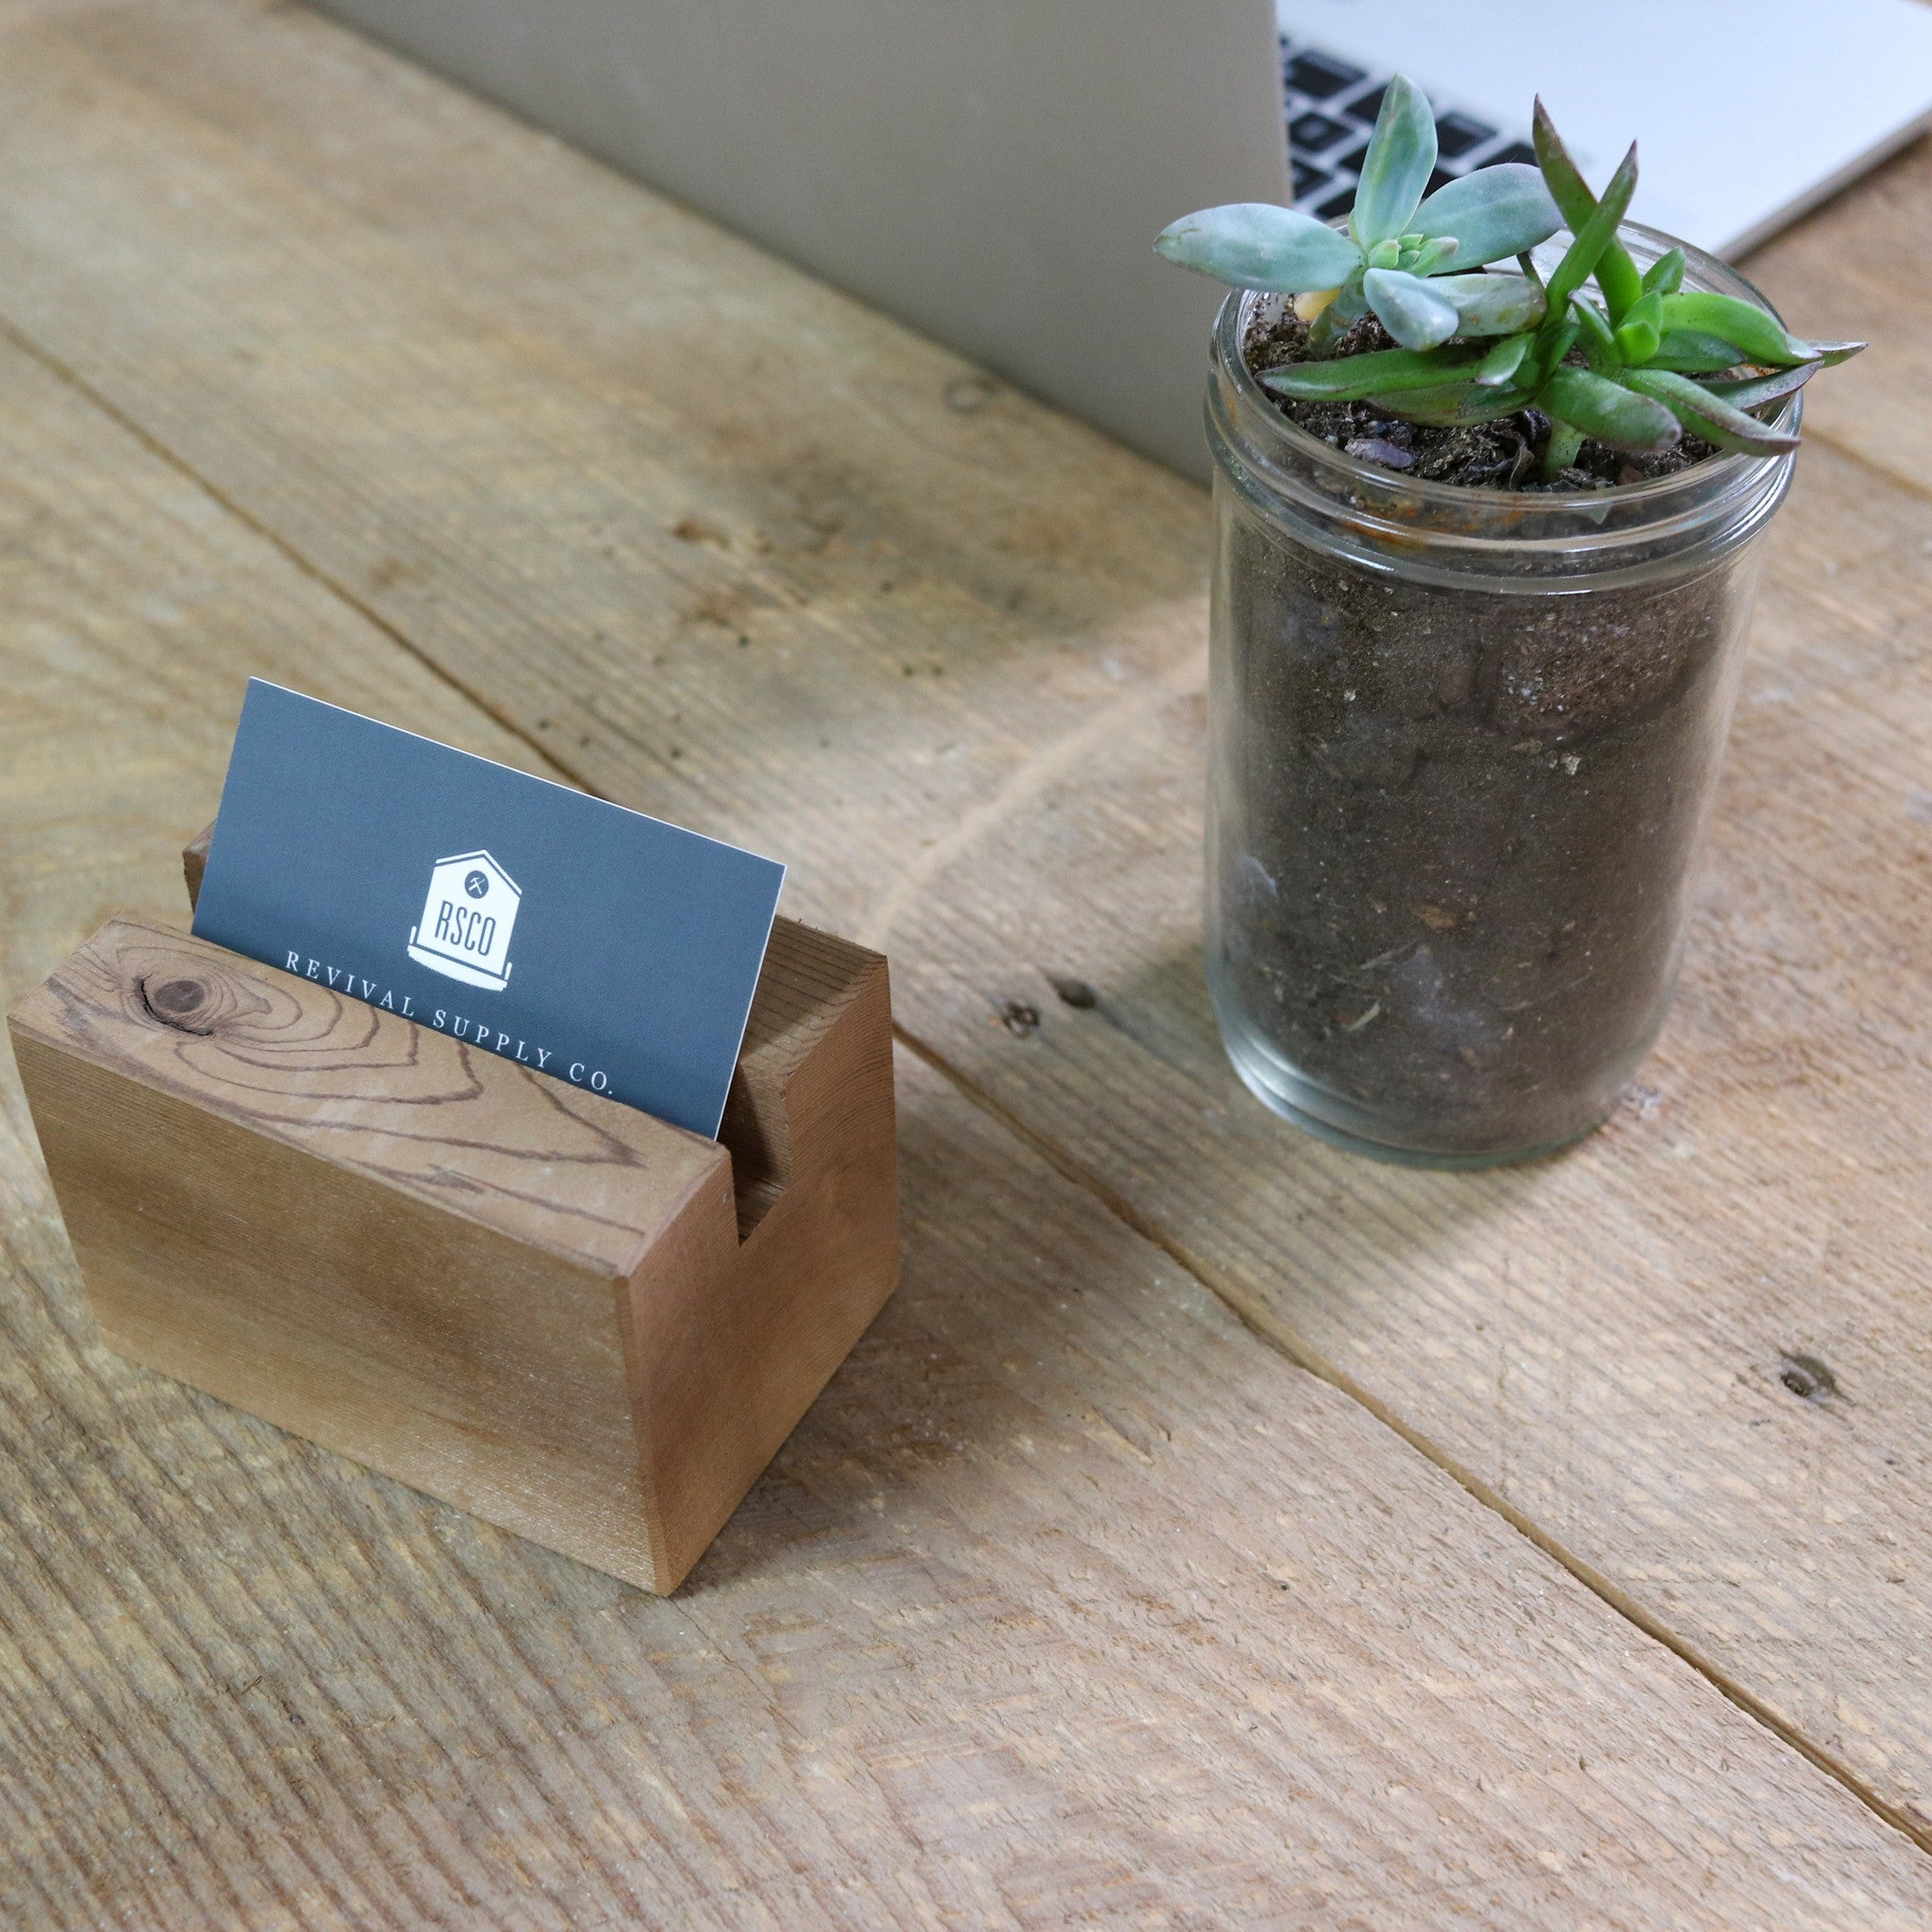 502 Business Card Holder